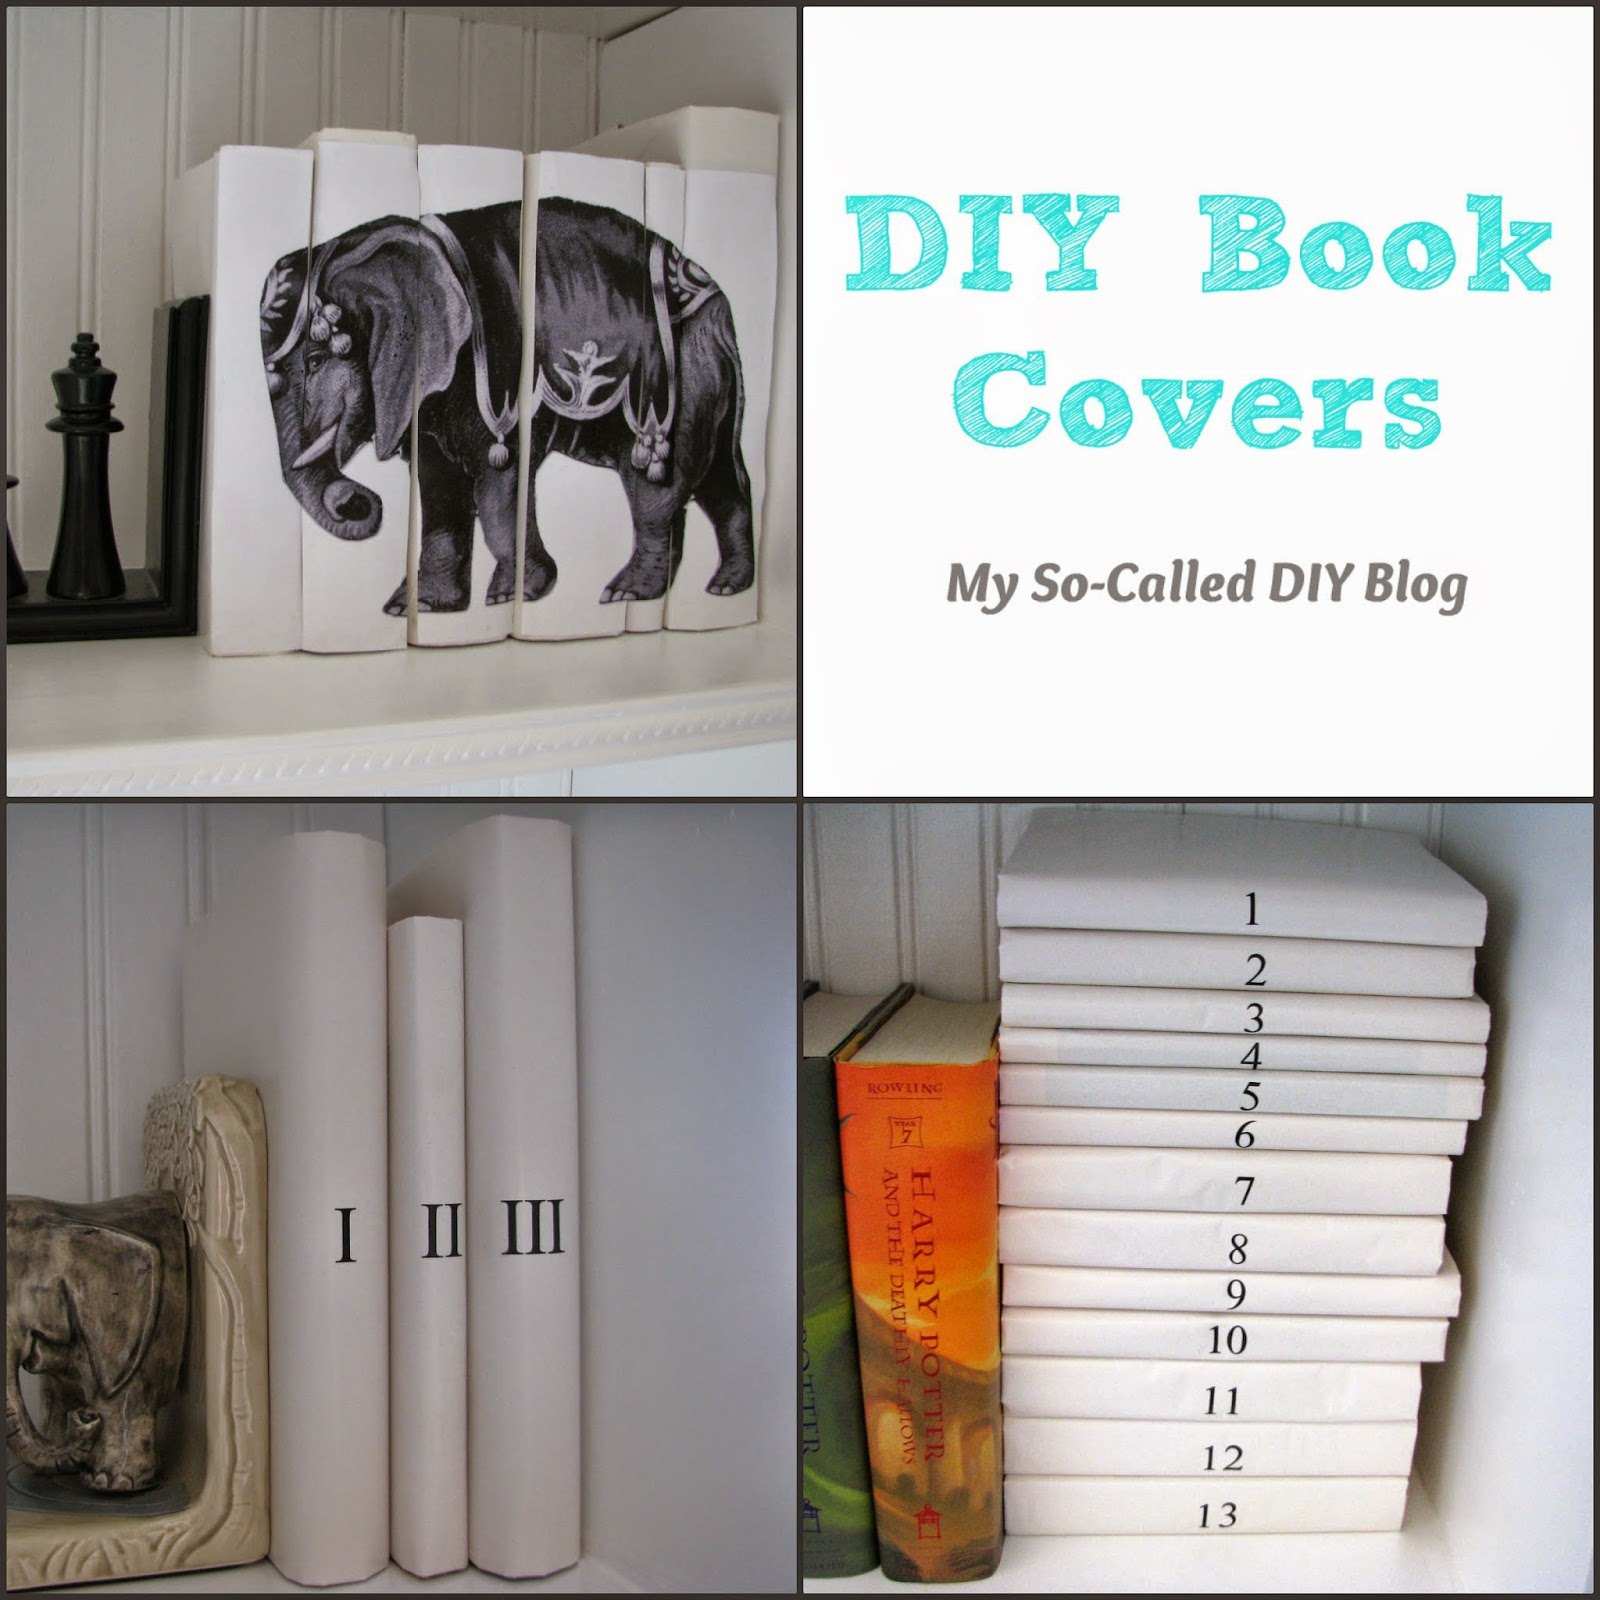 Diy Book Cover For Novel ~ My so called diy book covers